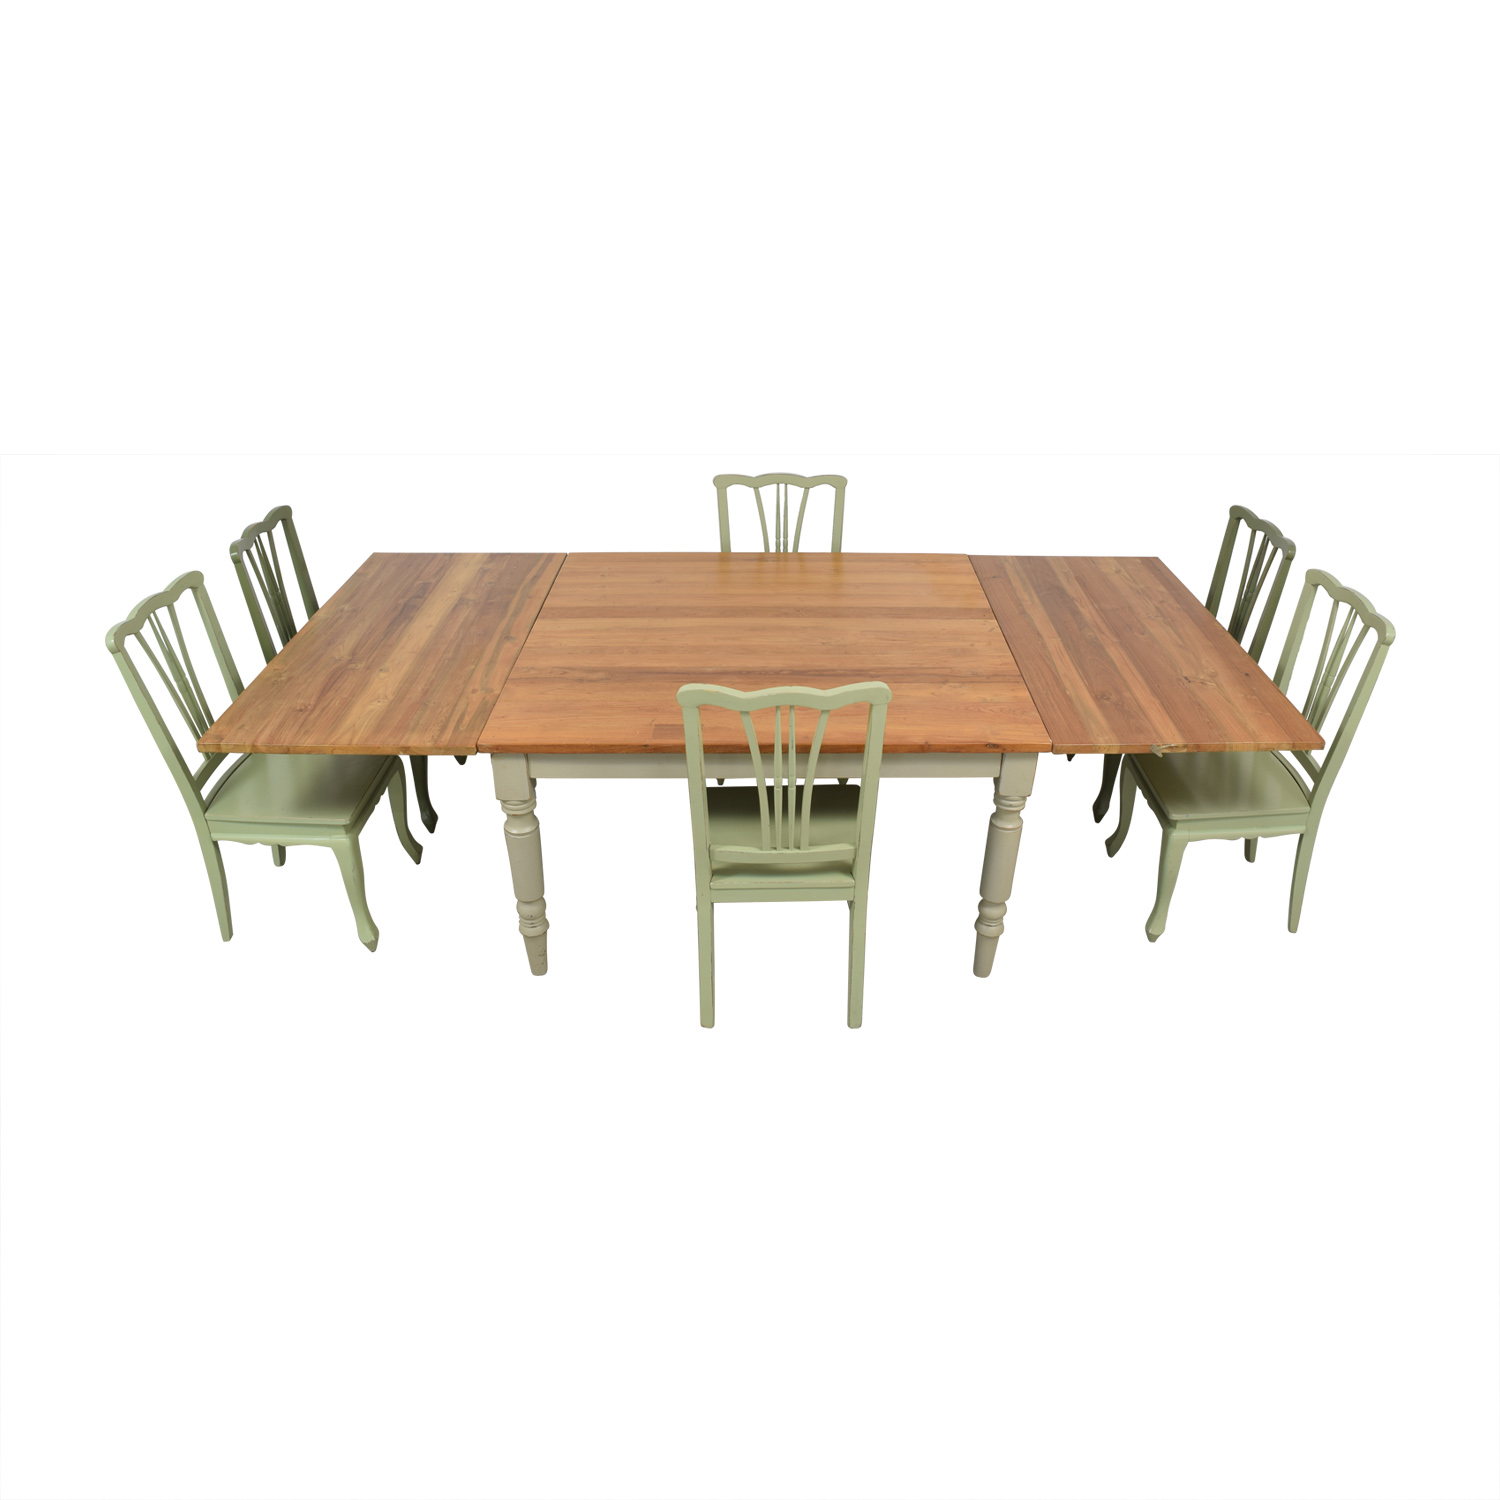 Second Hand Wood Sala Set 77 Off Wood Extendable Dining Set With Green Chairs